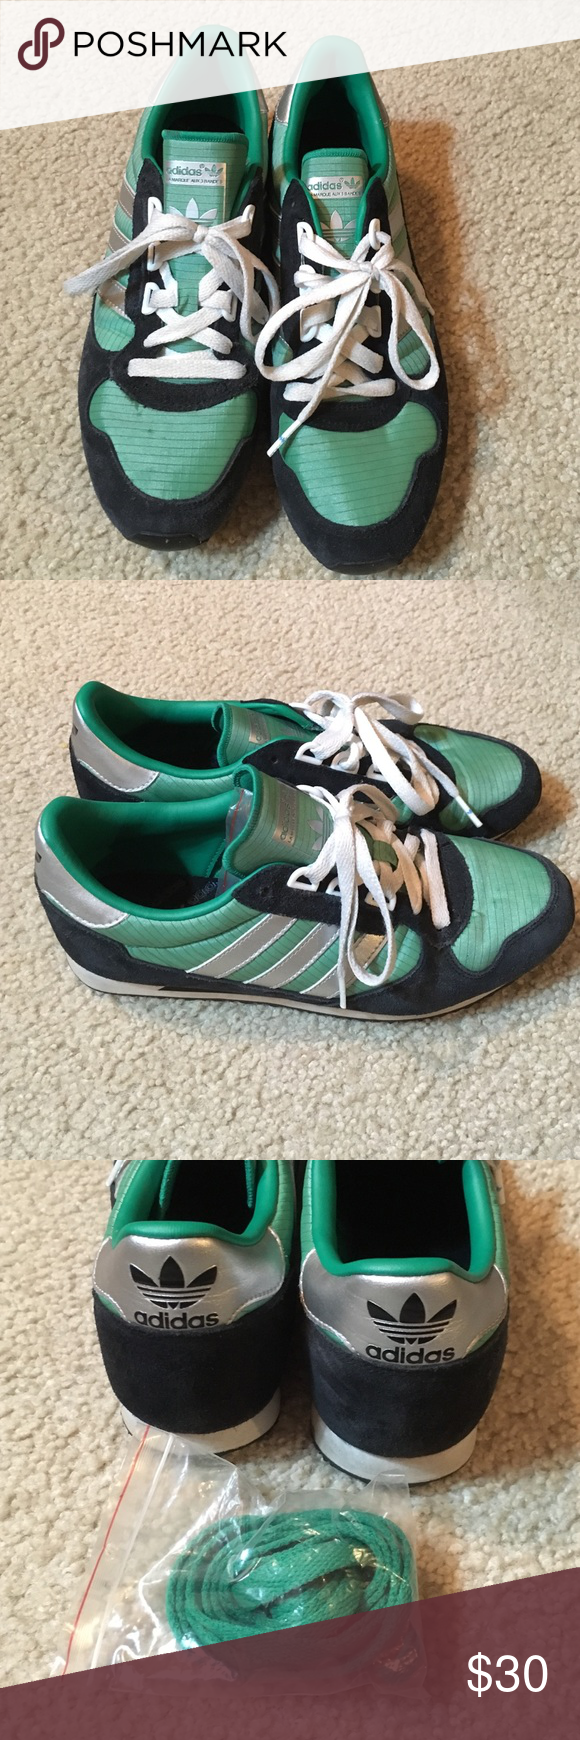 huge discount 3d54d 6ae01 Green adidas shoes 7 Kelly green, black and silver shoes size 7.5. Come  with white and green laces. Only worn twice. Adidas Shoes Athletic Shoes